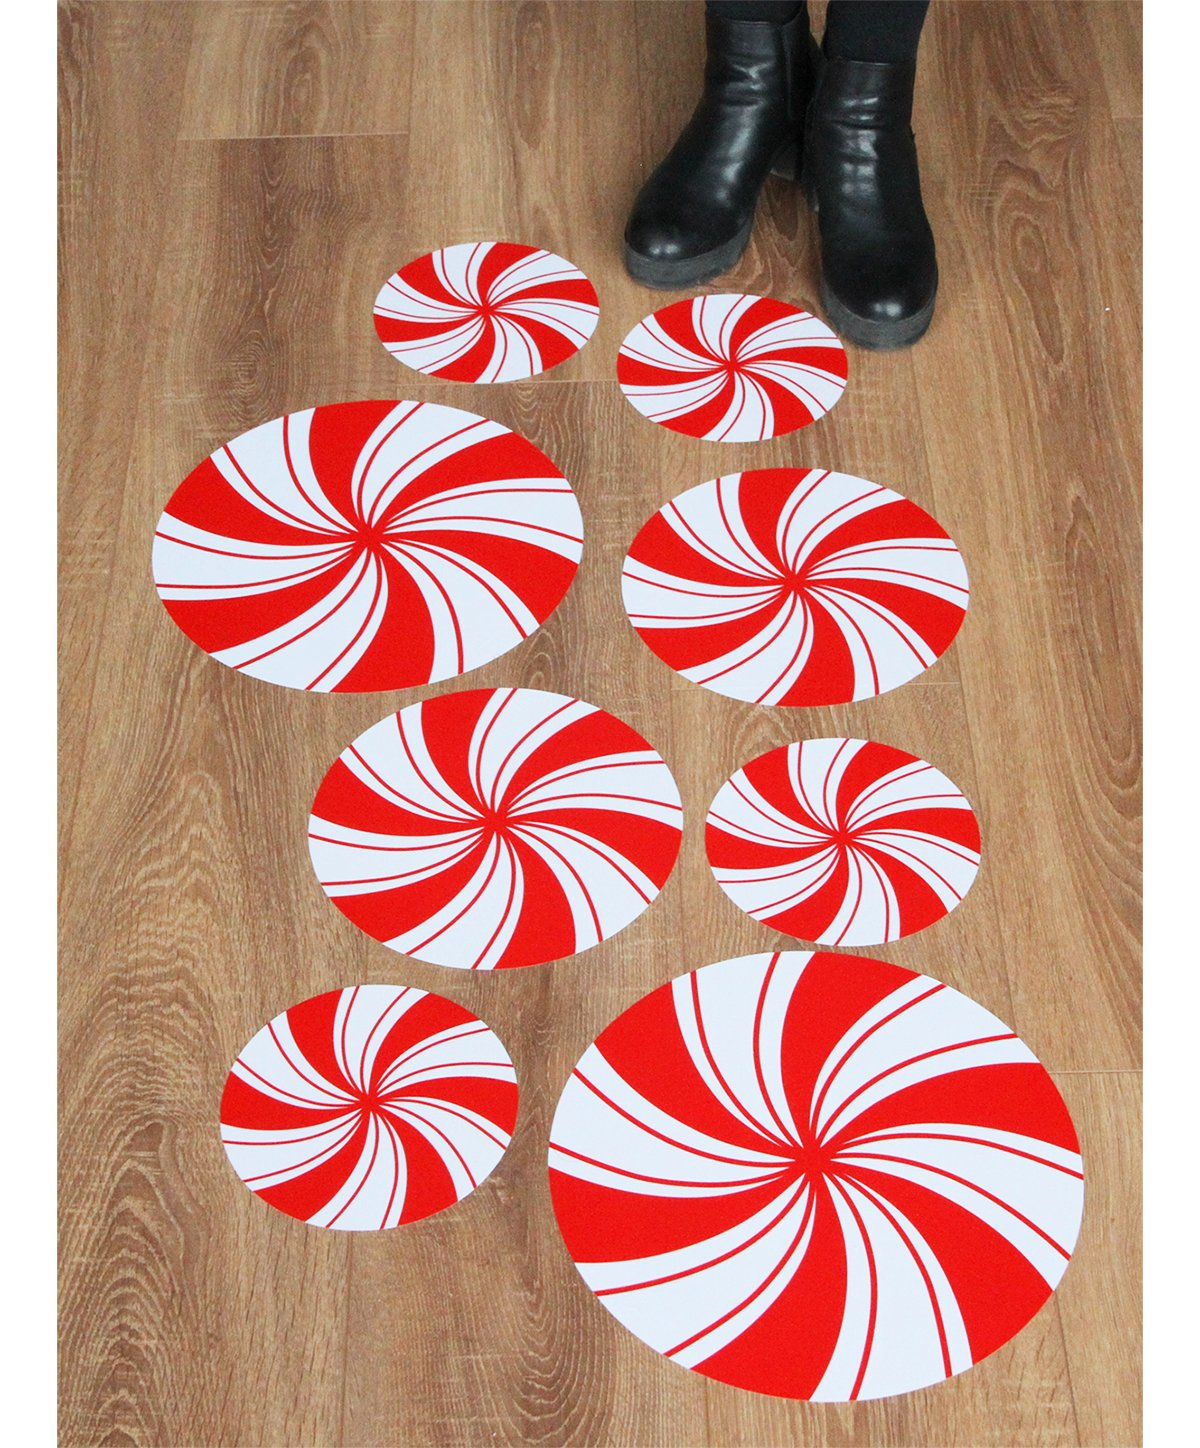 Peppermint Floor Decals Stickers for Christmas Candy Party Decoration 8 Pcs by ceiba tree (Image #1)